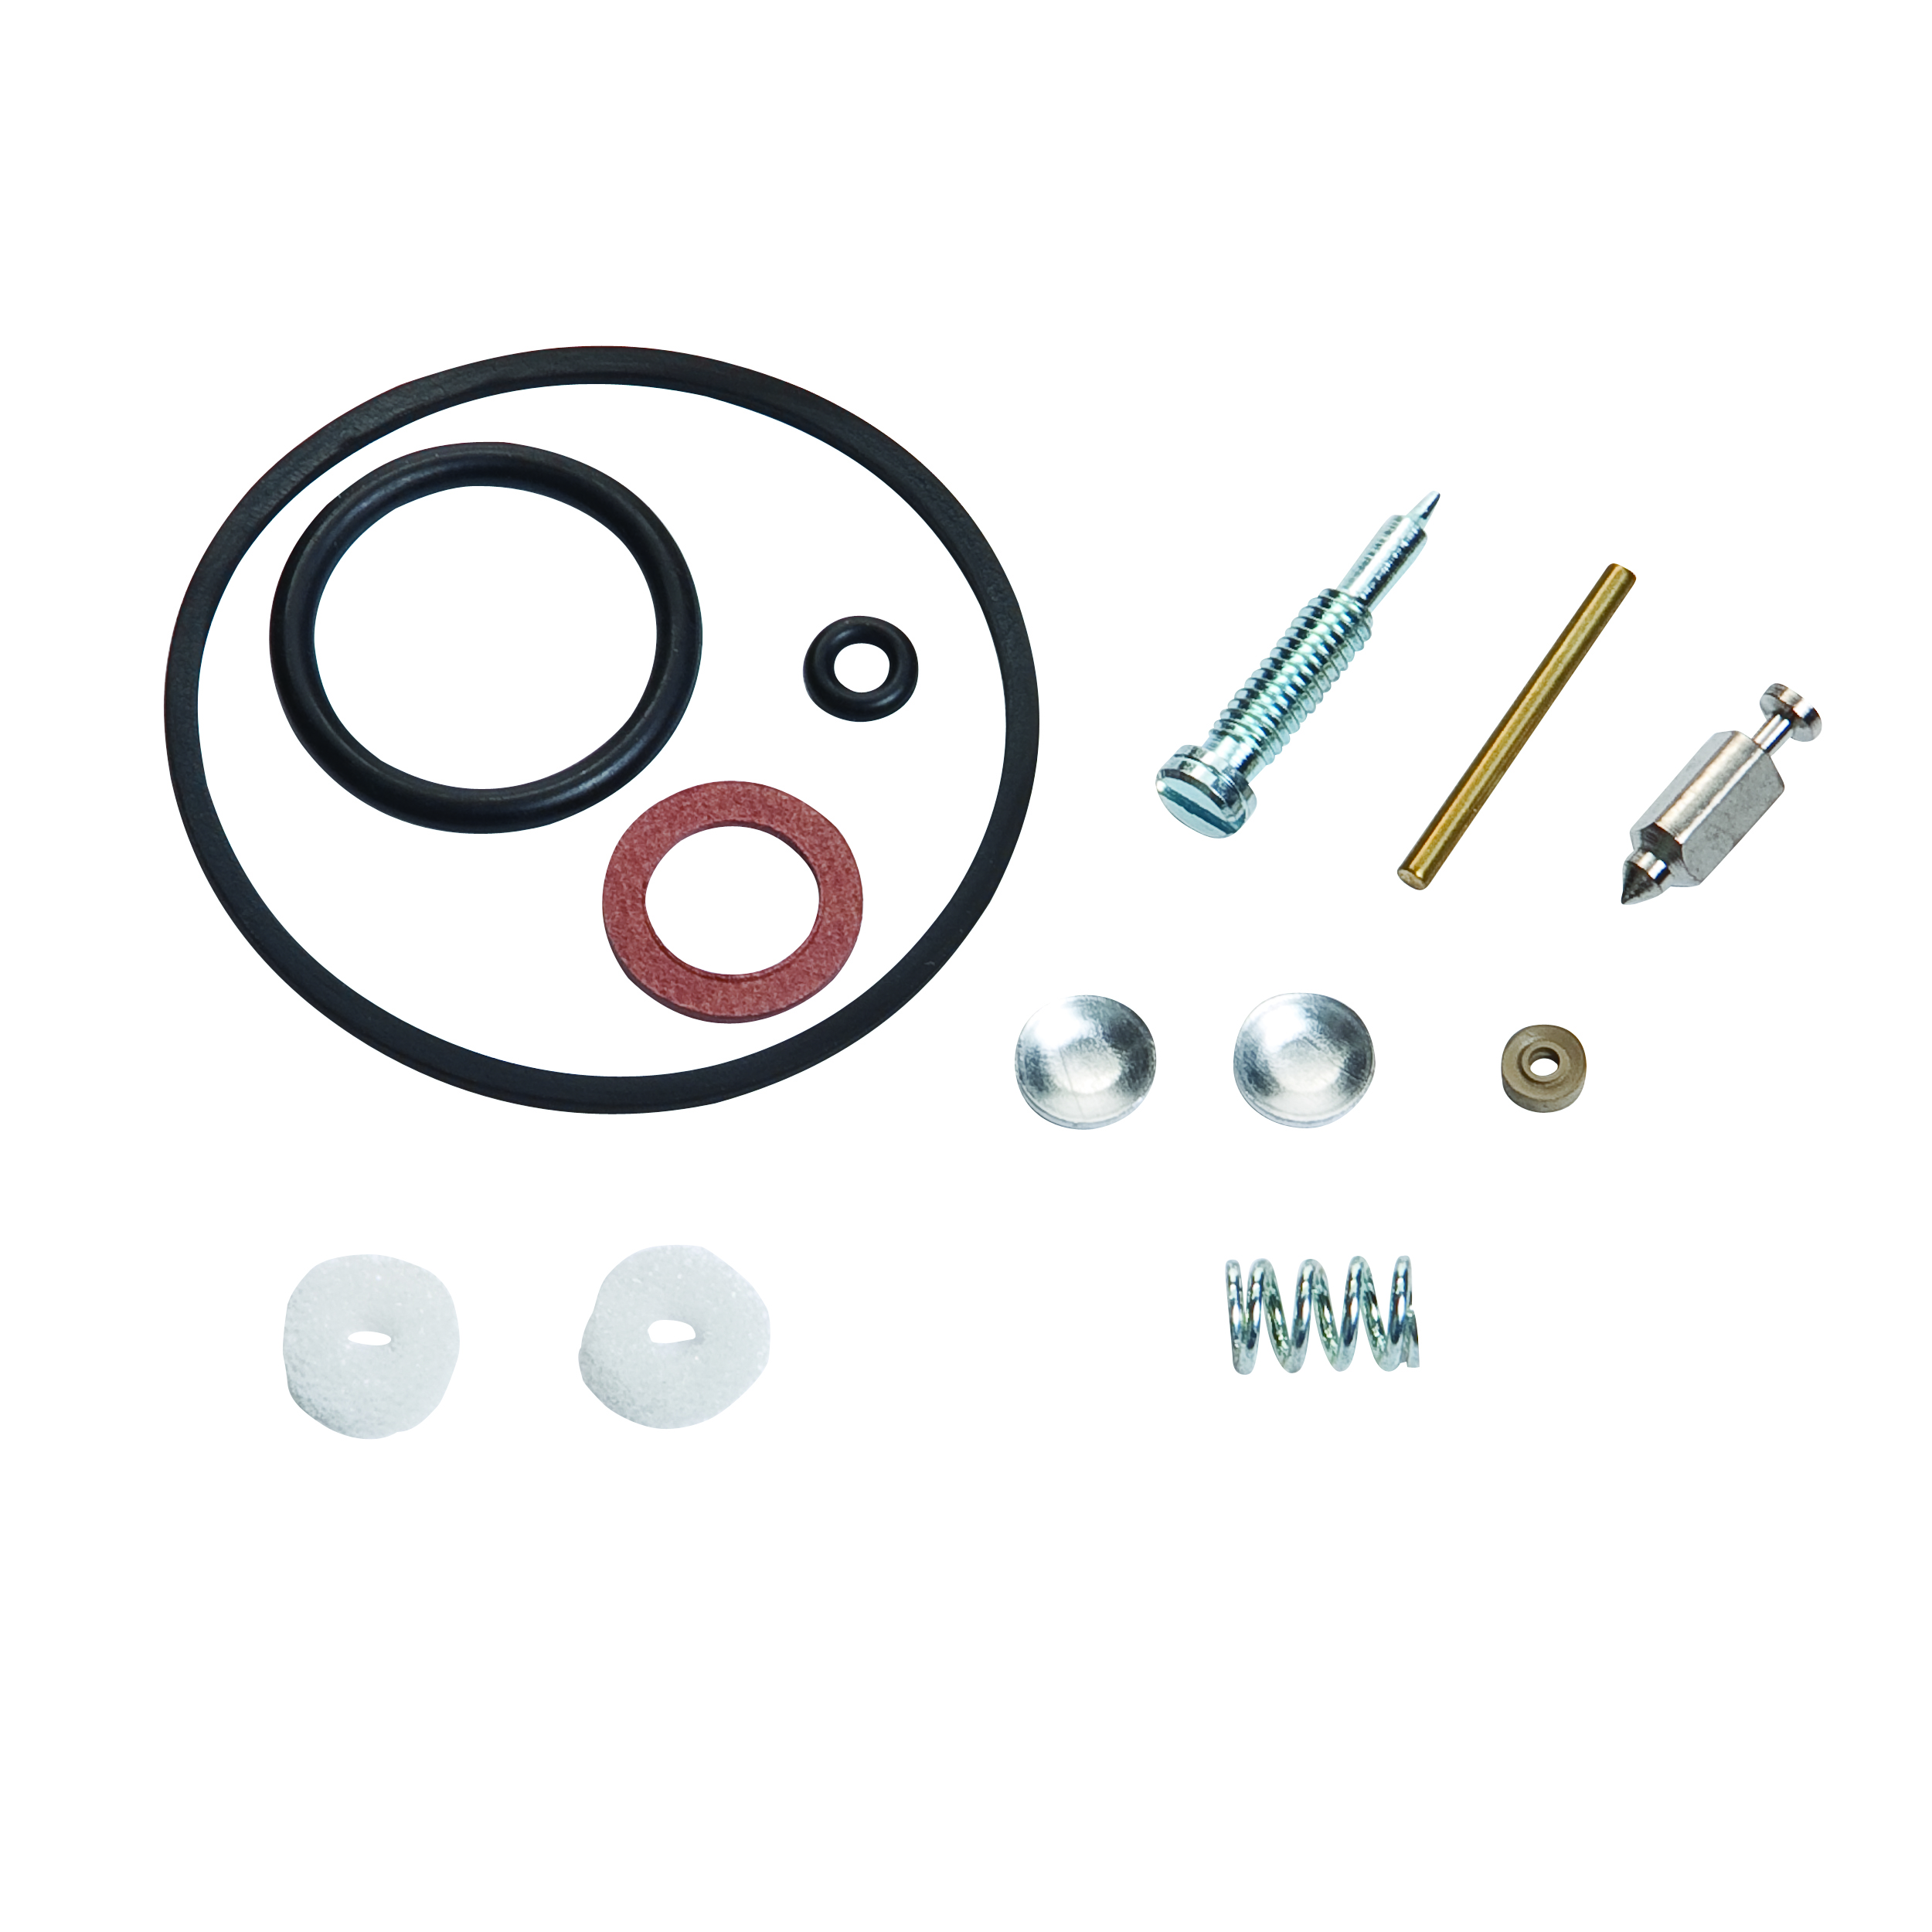 Carburetor Rebuild Kit For Briggs and Stratton # 494349, 492072, 398158